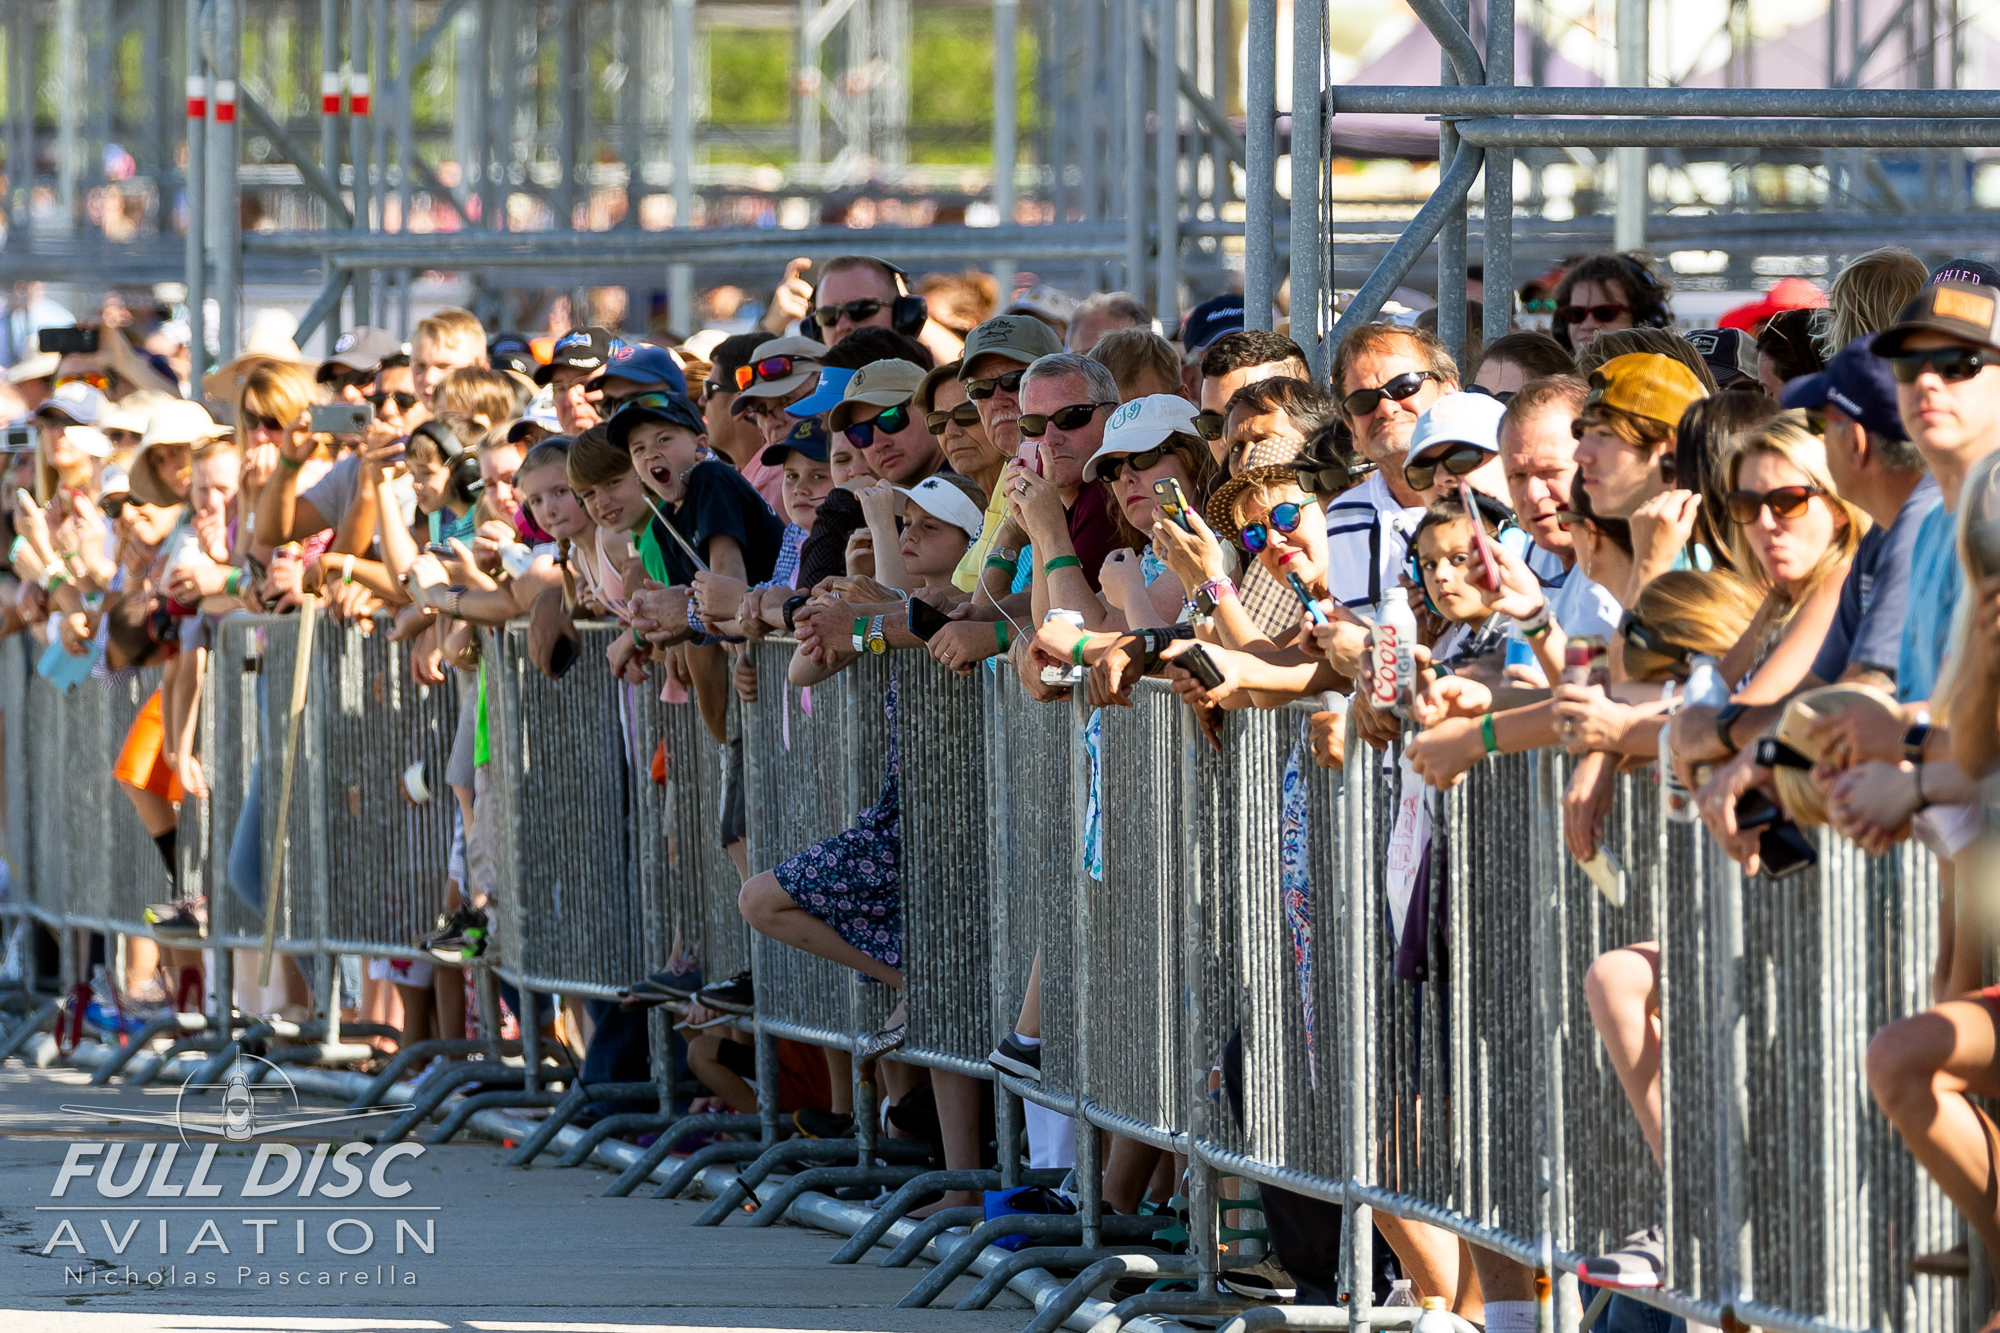 nicholaspascarella_fulldiscavation_aviation_airshow_mcasbeaufort_crowd.jpg